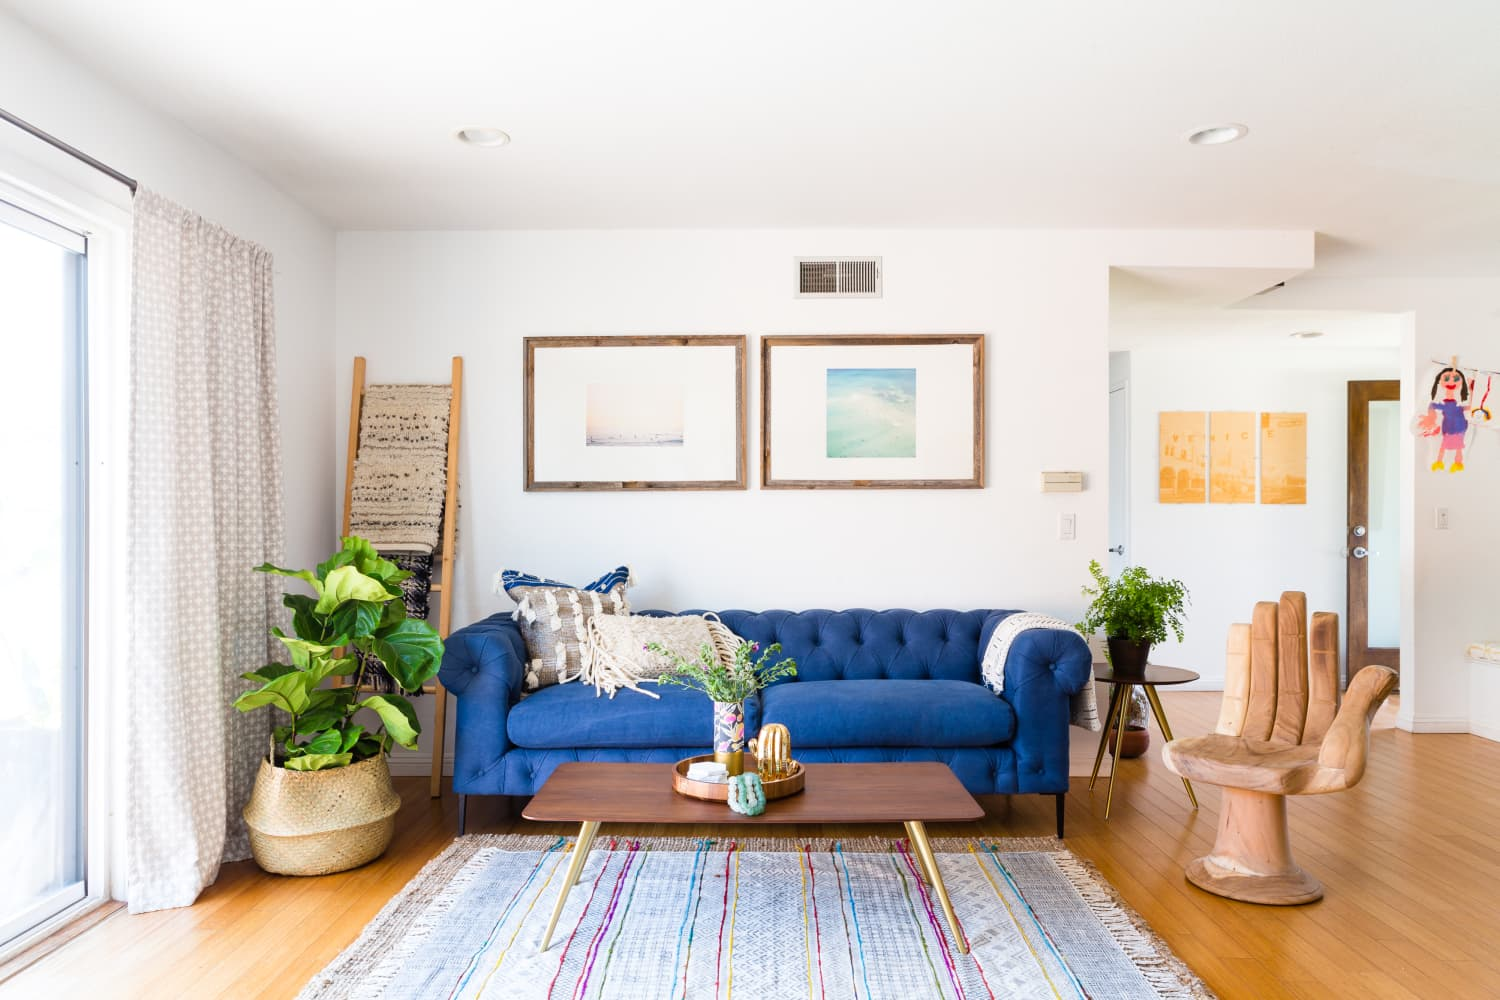 8 of Our Favorite Places to Shop Boho Furniture and Decor on a Budget